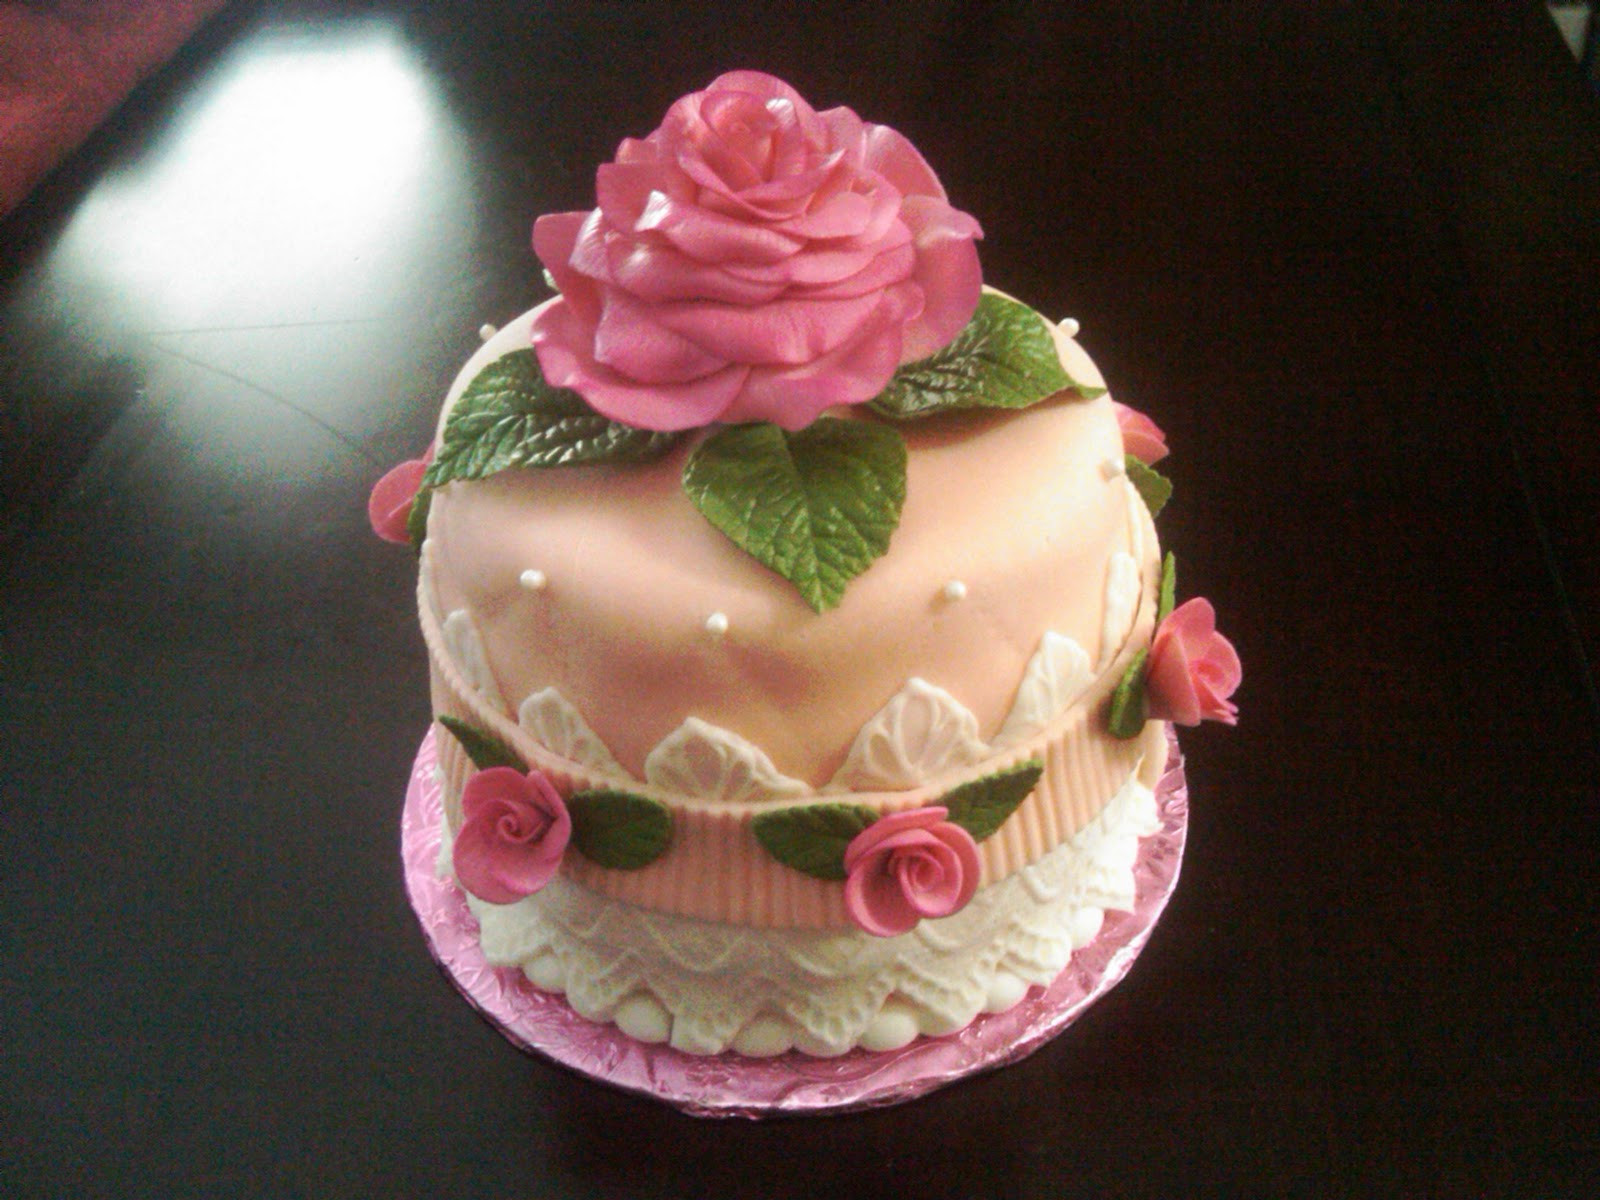 Best ideas about Rose Birthday Cake . Save or Pin Fabbylicious Cakes Rose Birthday Cake Now.